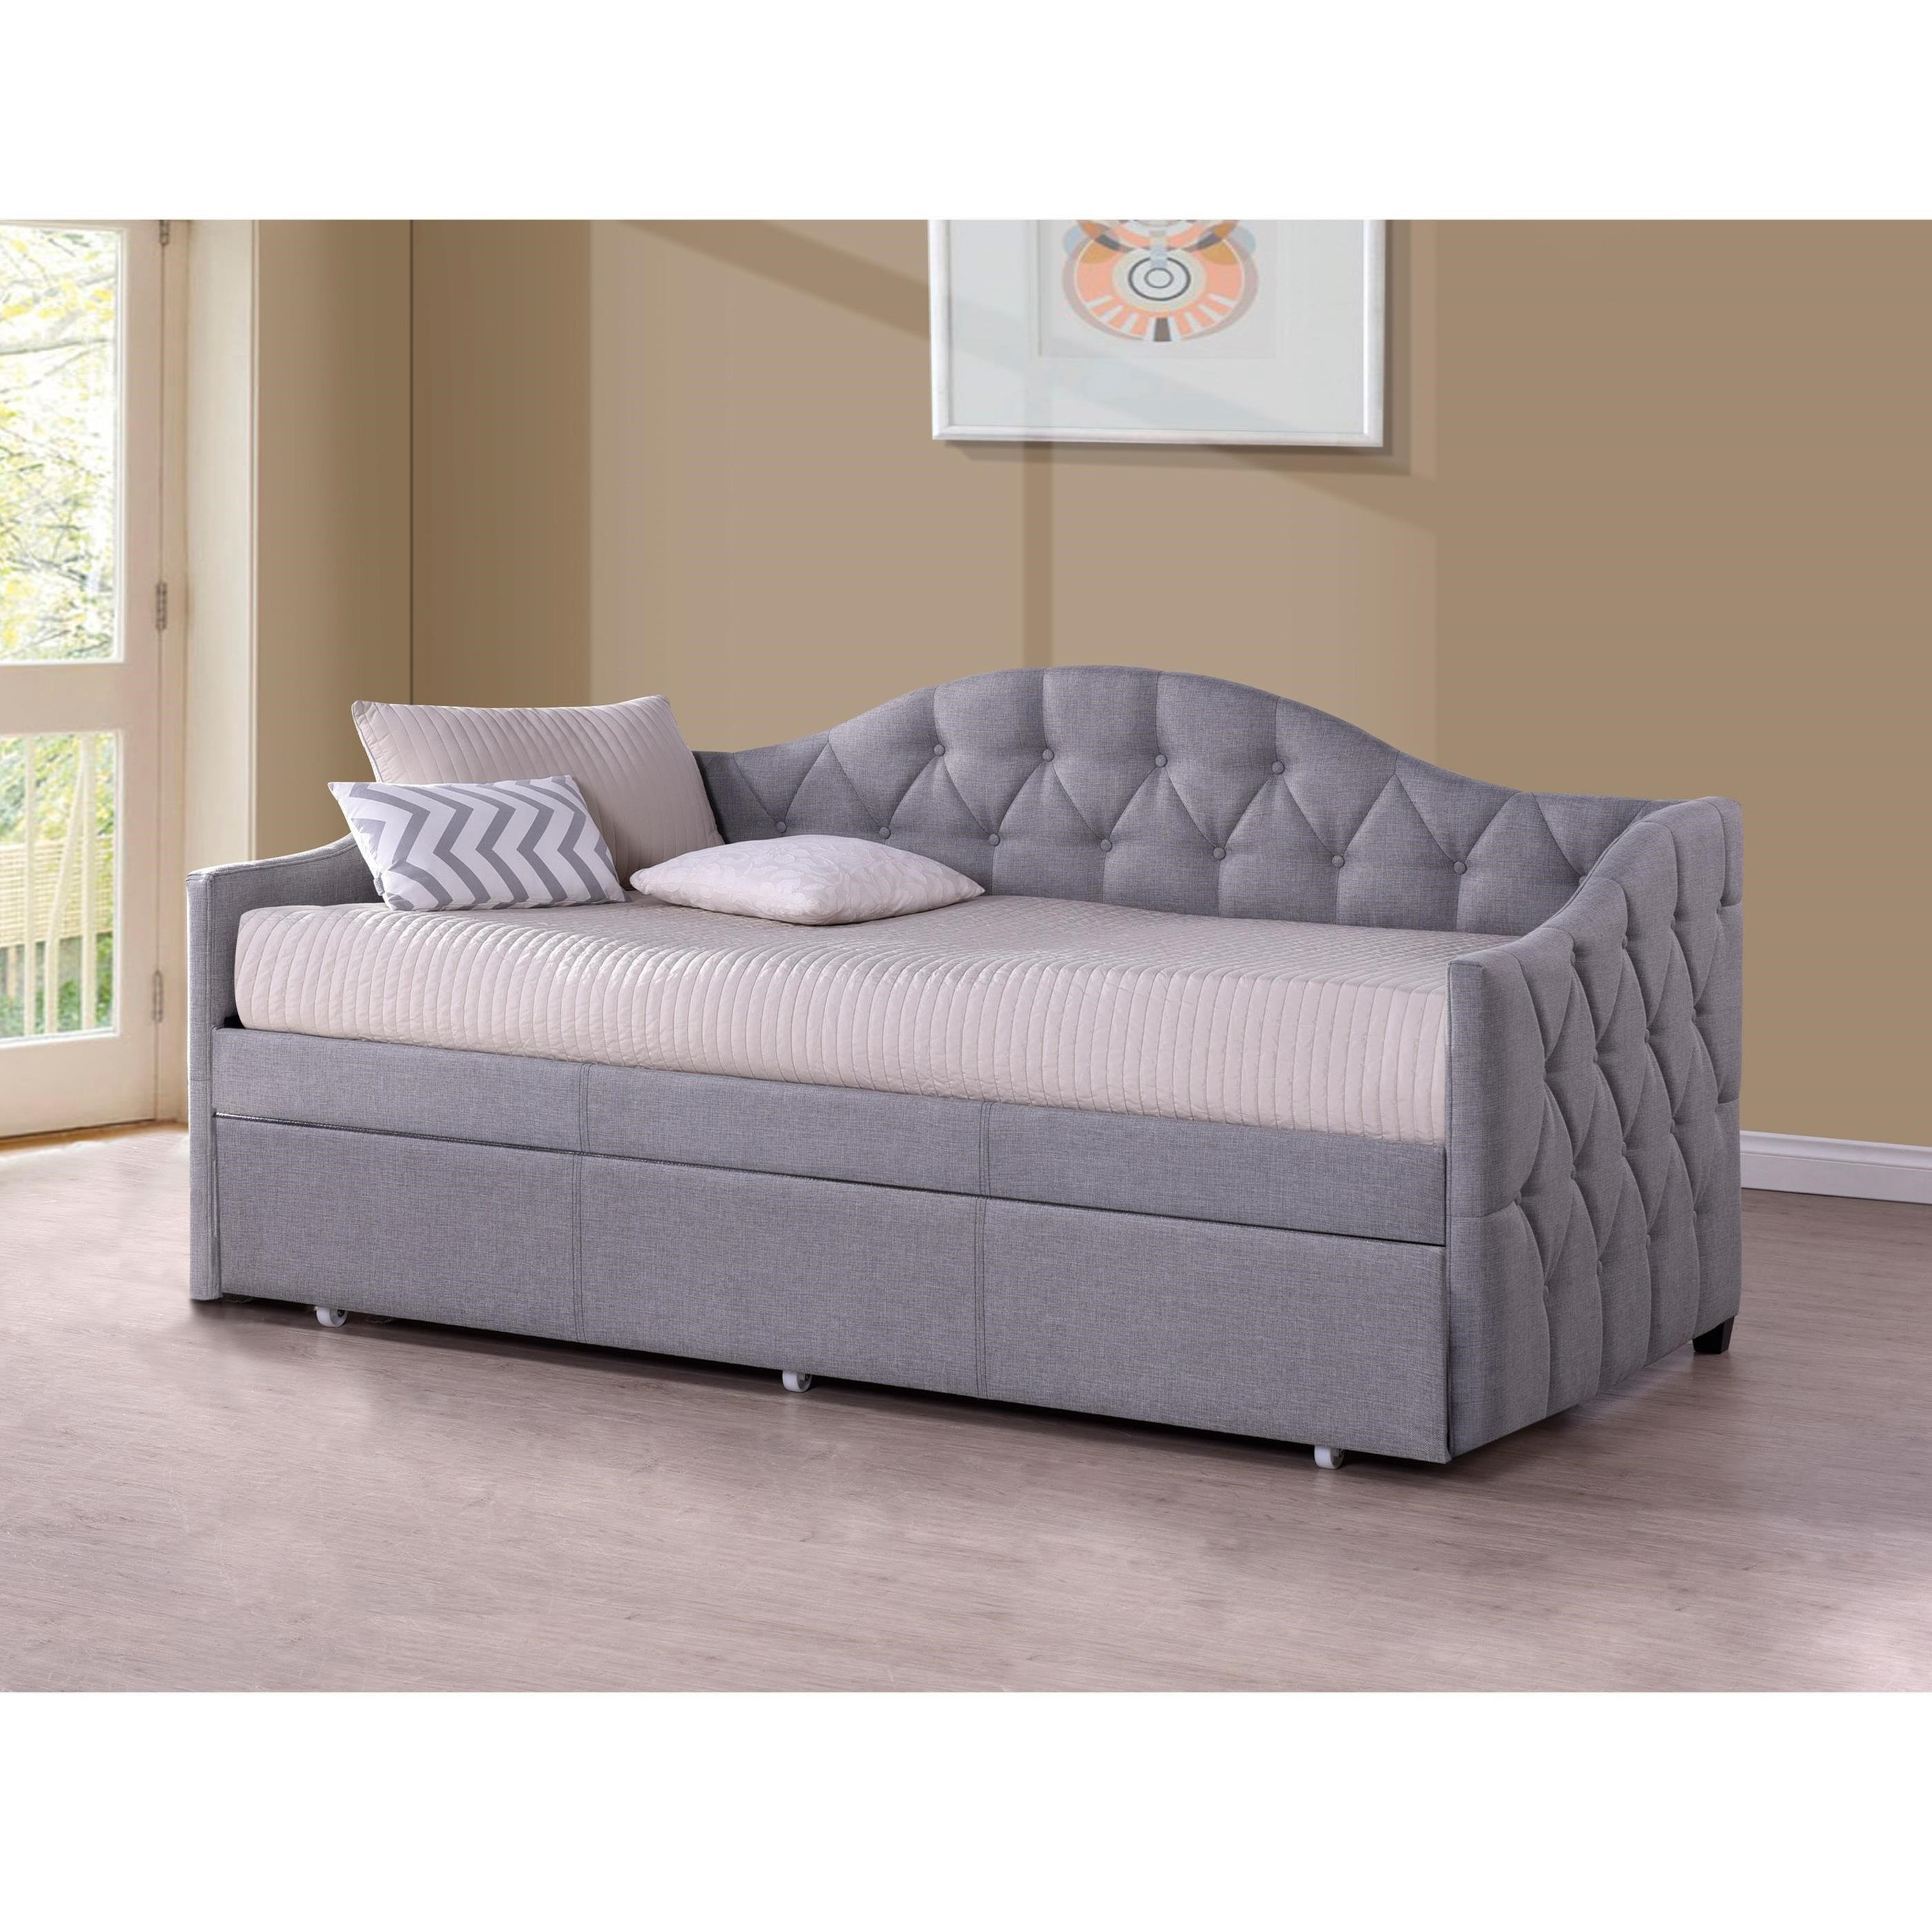 Daybeds Daybed with Trundle by Hillsdale at Steger's Furniture